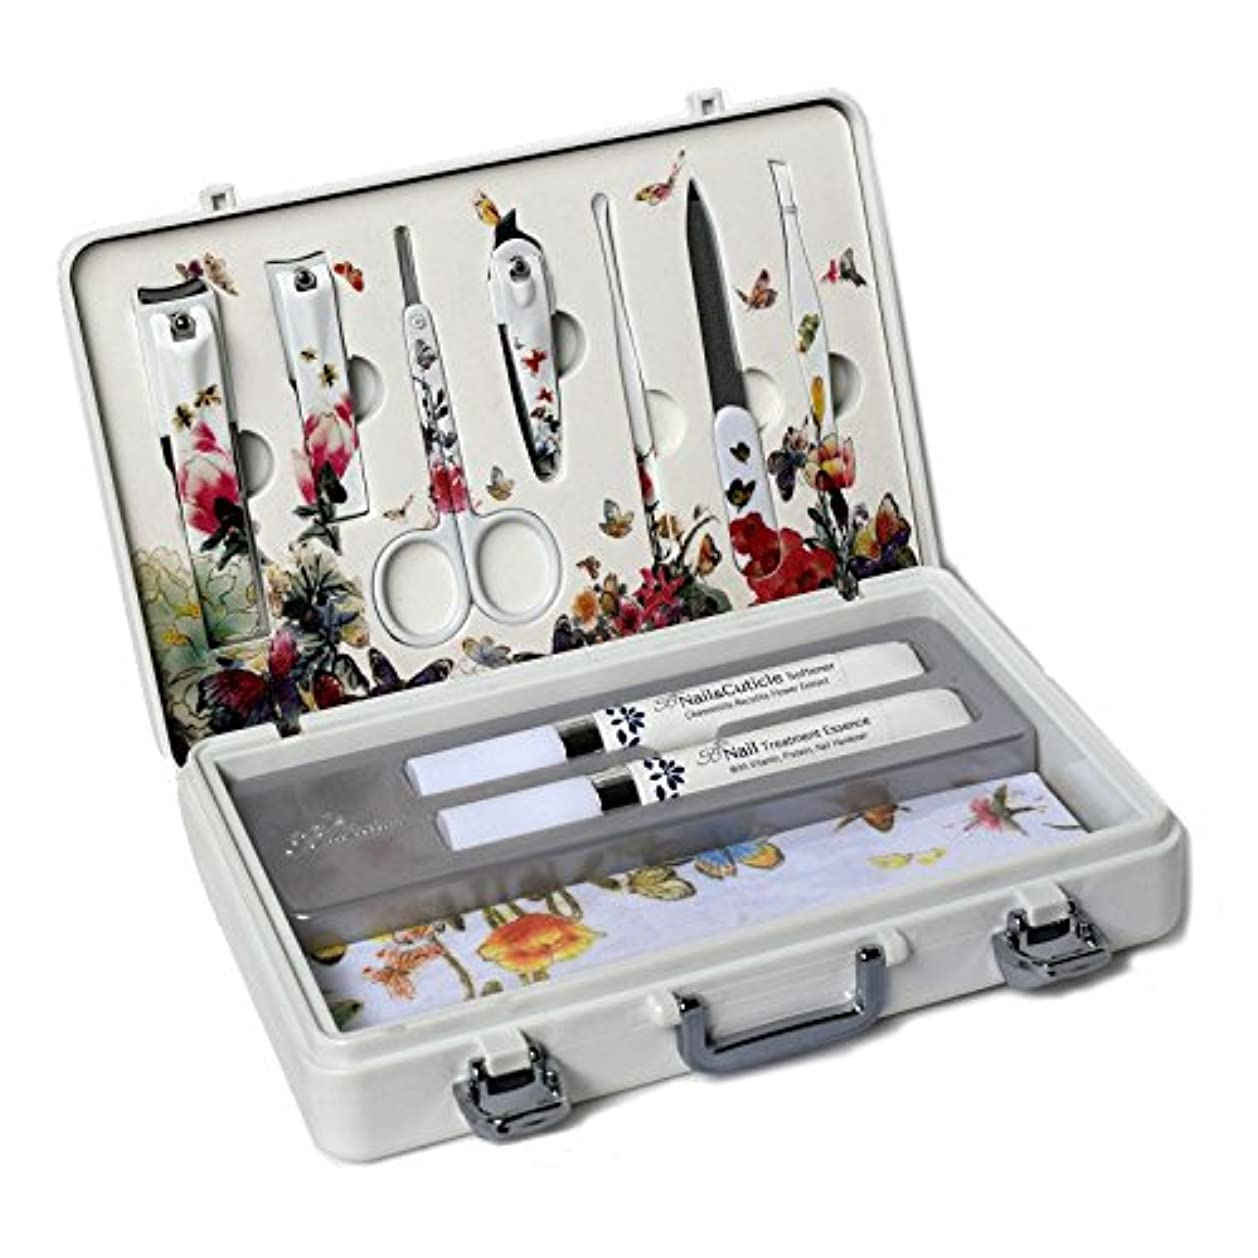 METAL BELL Manicure Sets BN-2000 爪の管理セット爪切りセット 高品質のネイルケアセット高級感のある東洋画のデザイン Nail Clippers Nail Care Set